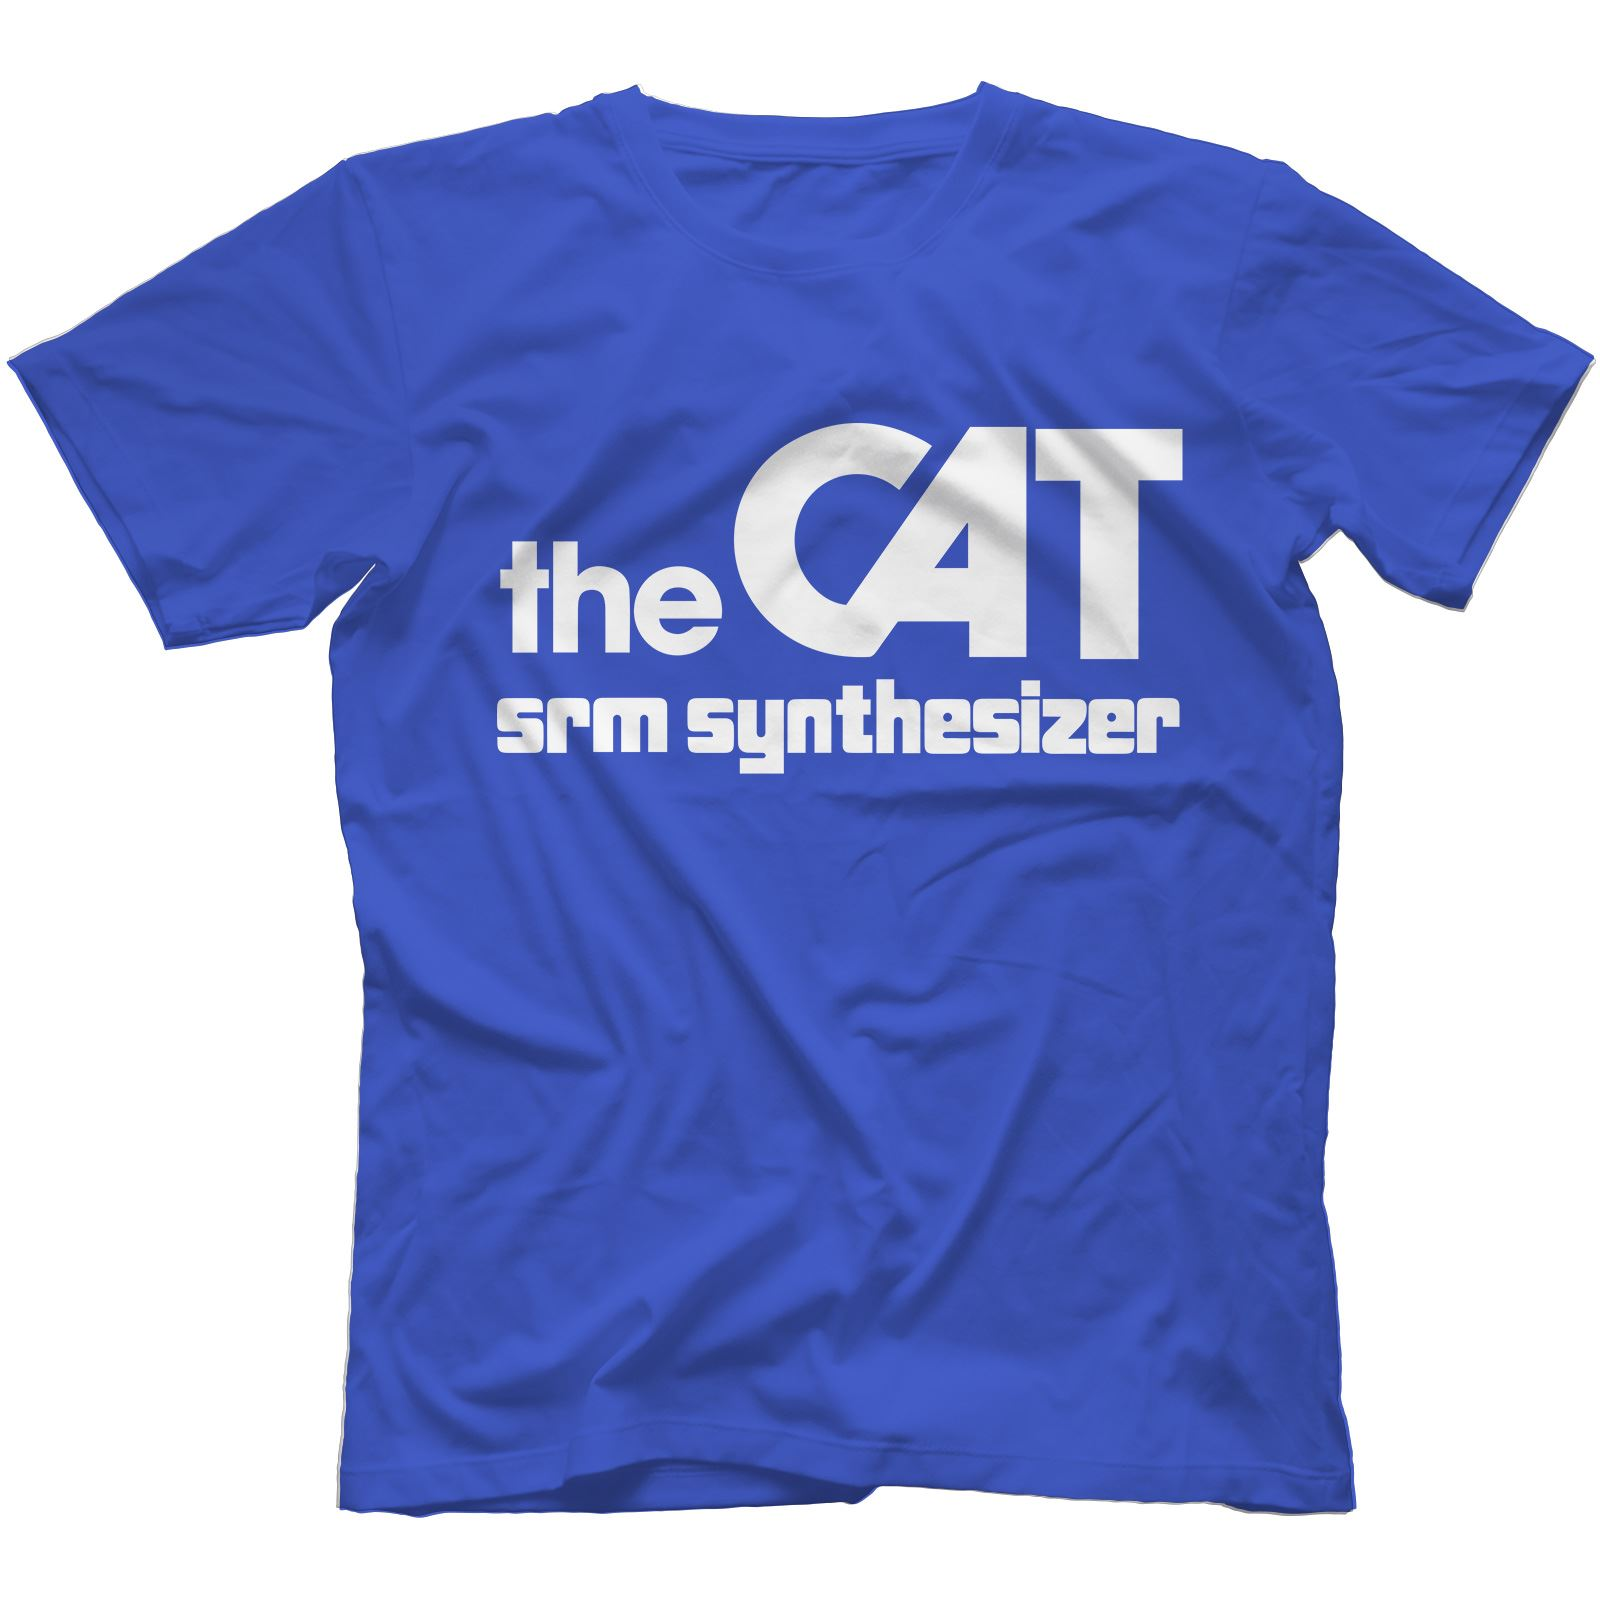 The-Cat-SRM-Synthesiser-T-Shirt-100-Cotton-Retro-Analog-Arp-Odyssey Indexbild 51